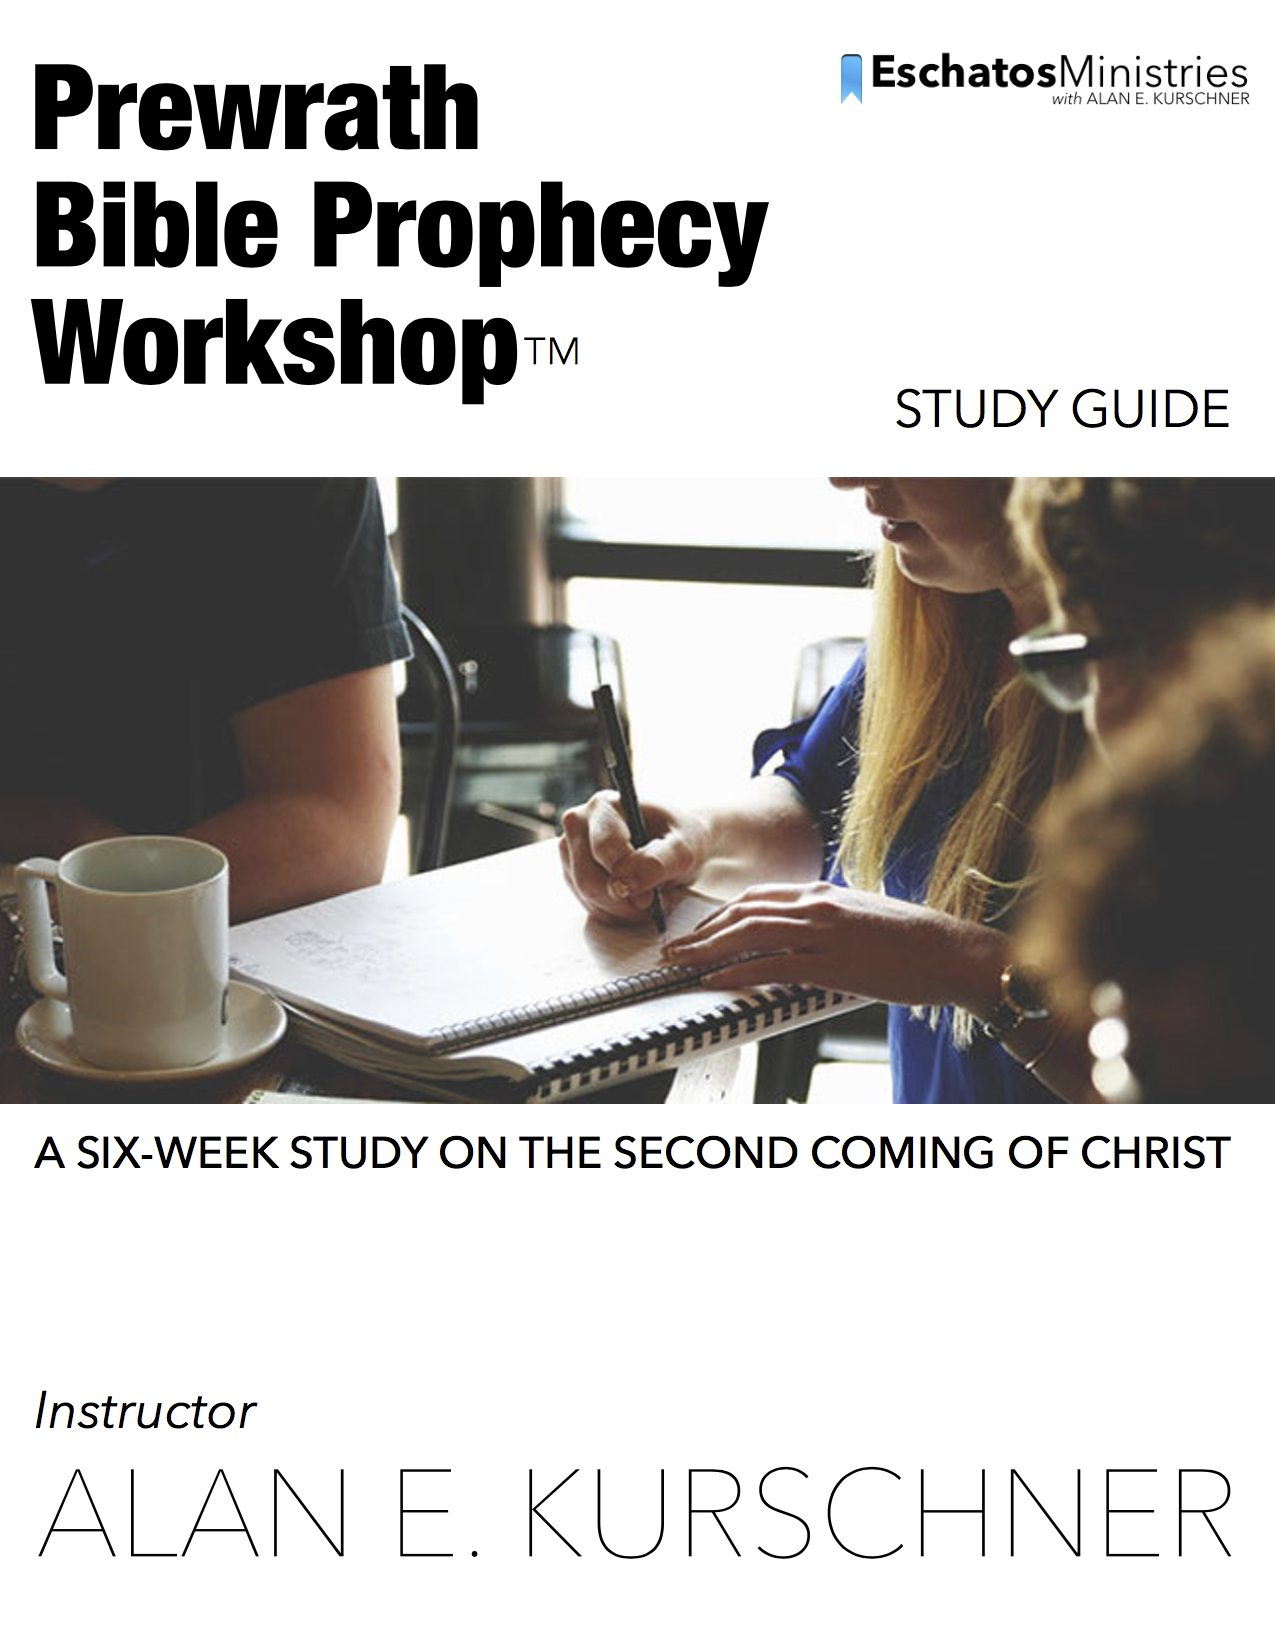 Get the Prewrath Bible Prophecy Workshop™ Study Guide for FREE